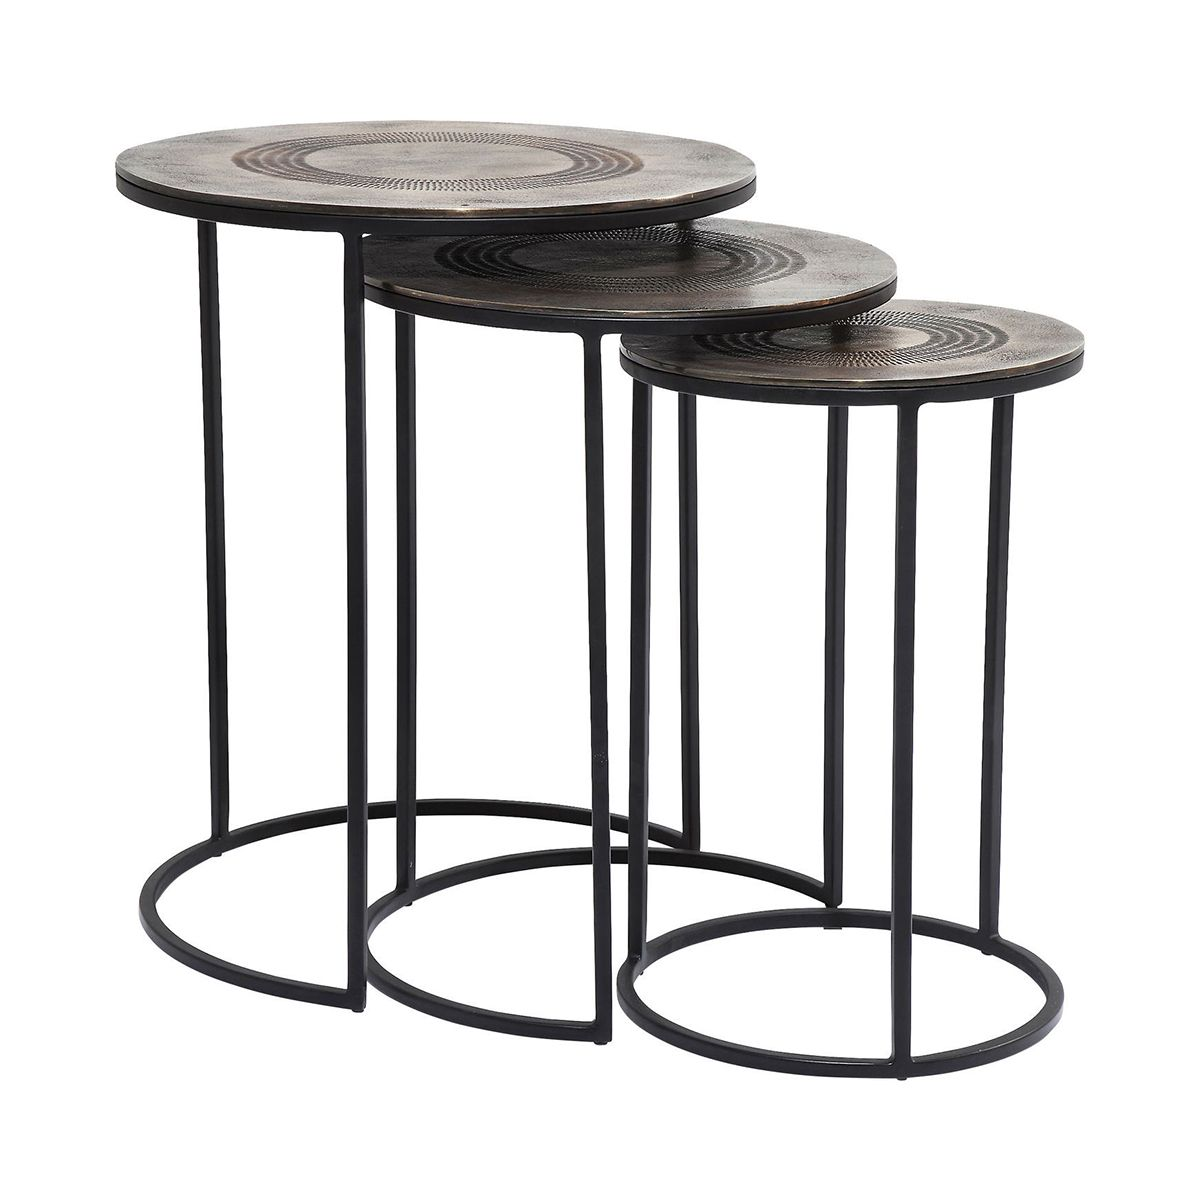 KARE Design Marrakesh Side Table 3Set 80270 Coffee Side